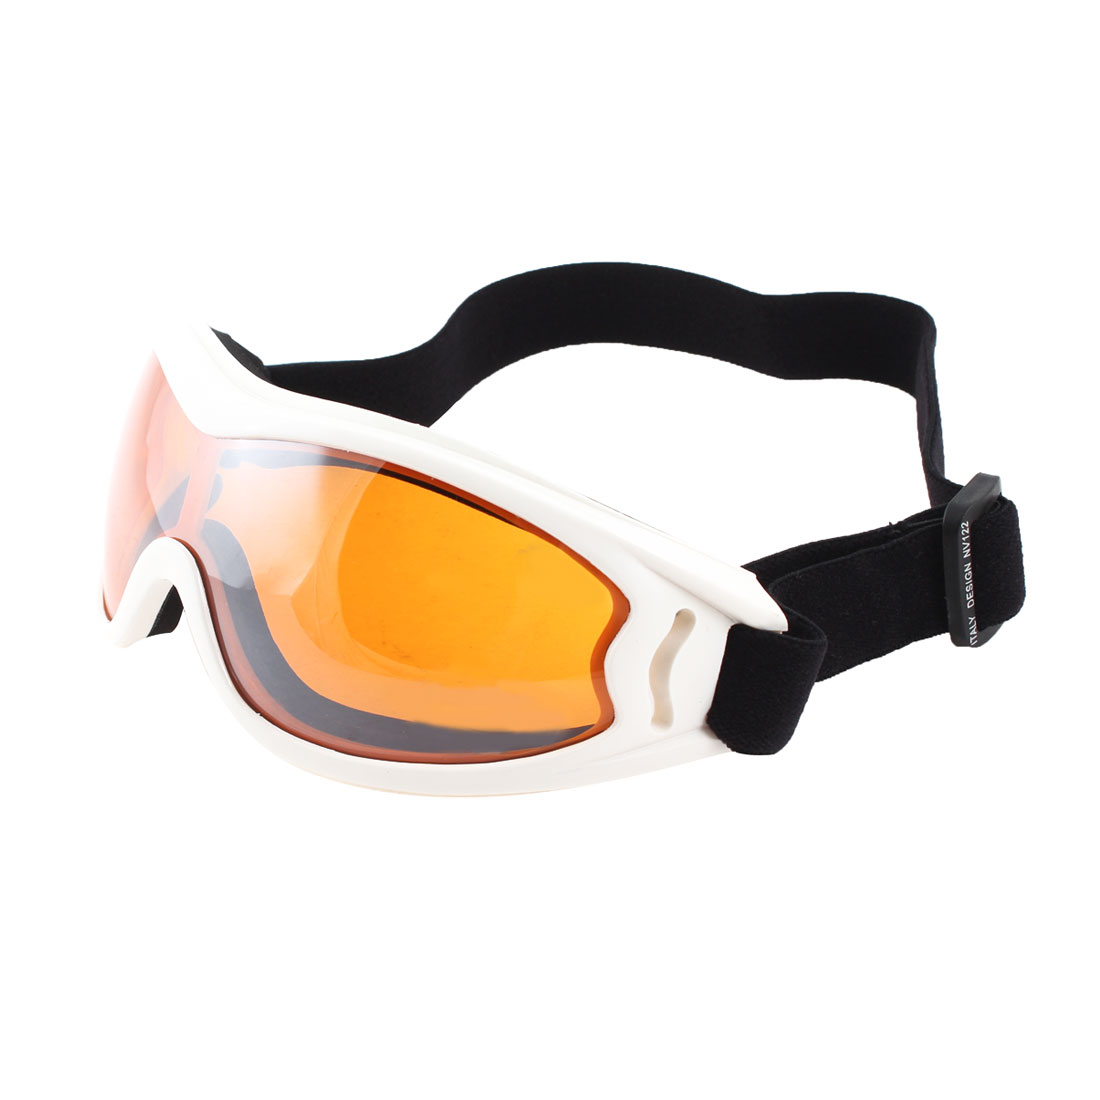 Adults Full Rim Clear Orange Lens Motorcycle Ski Sports Goggles Sunglasses